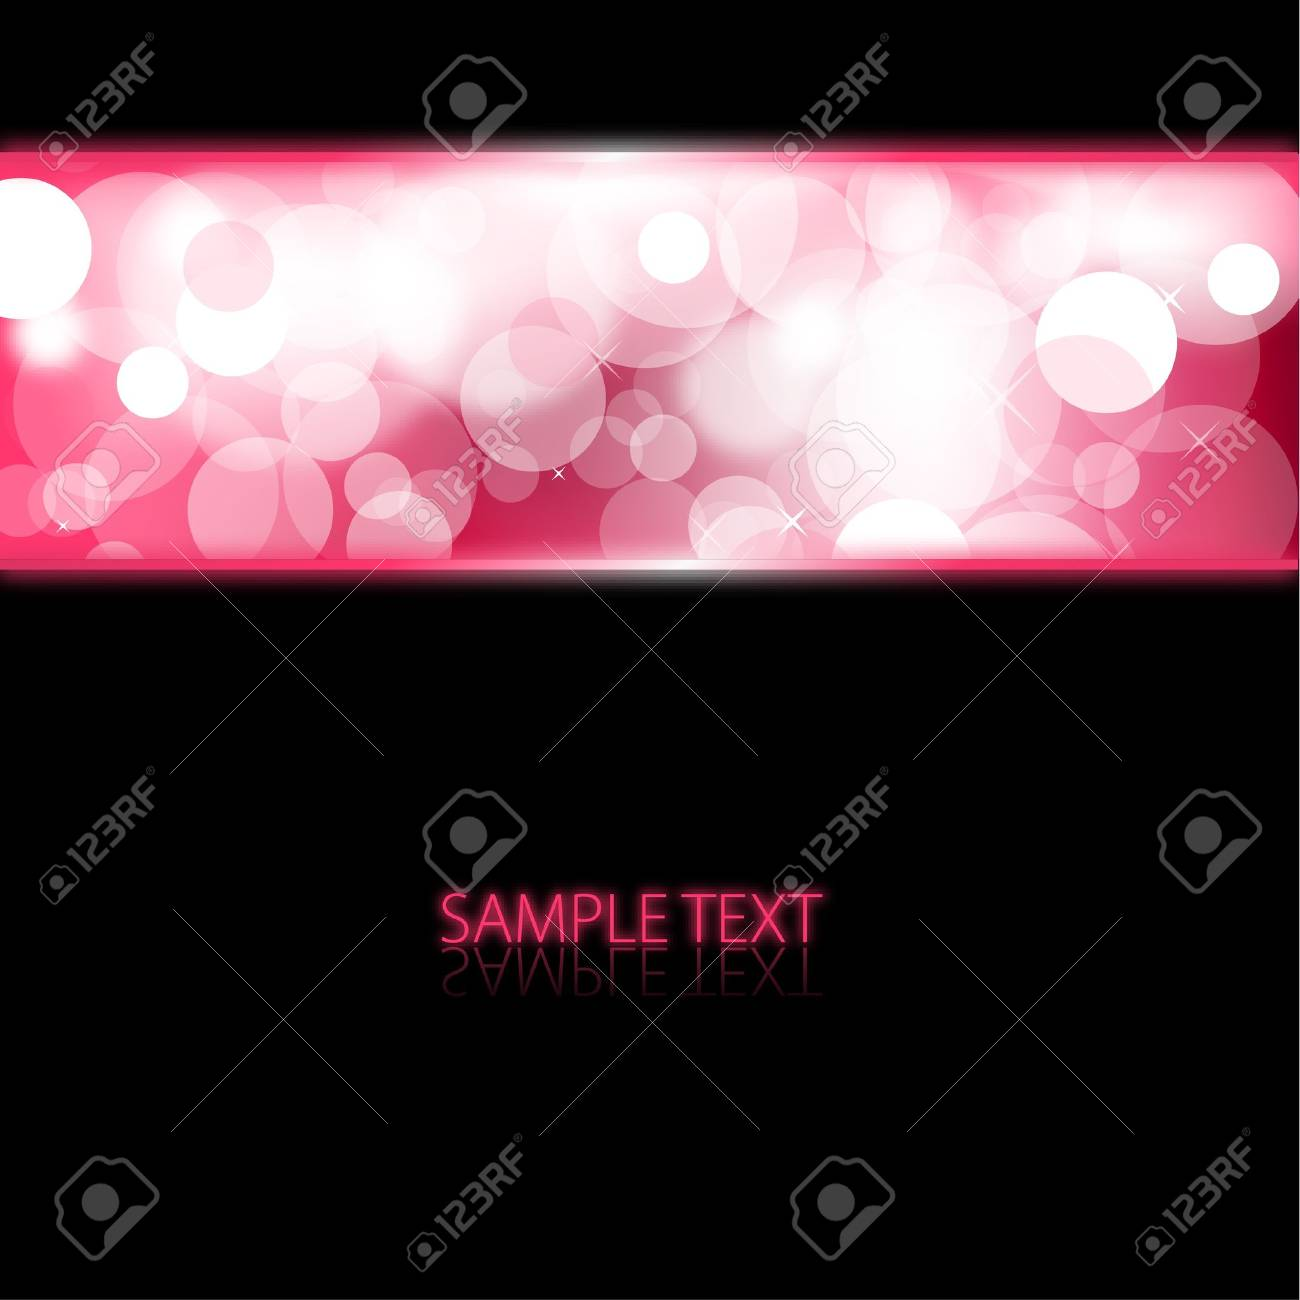 Black abstract background with pink glowing lights Stock Photo - 6881168